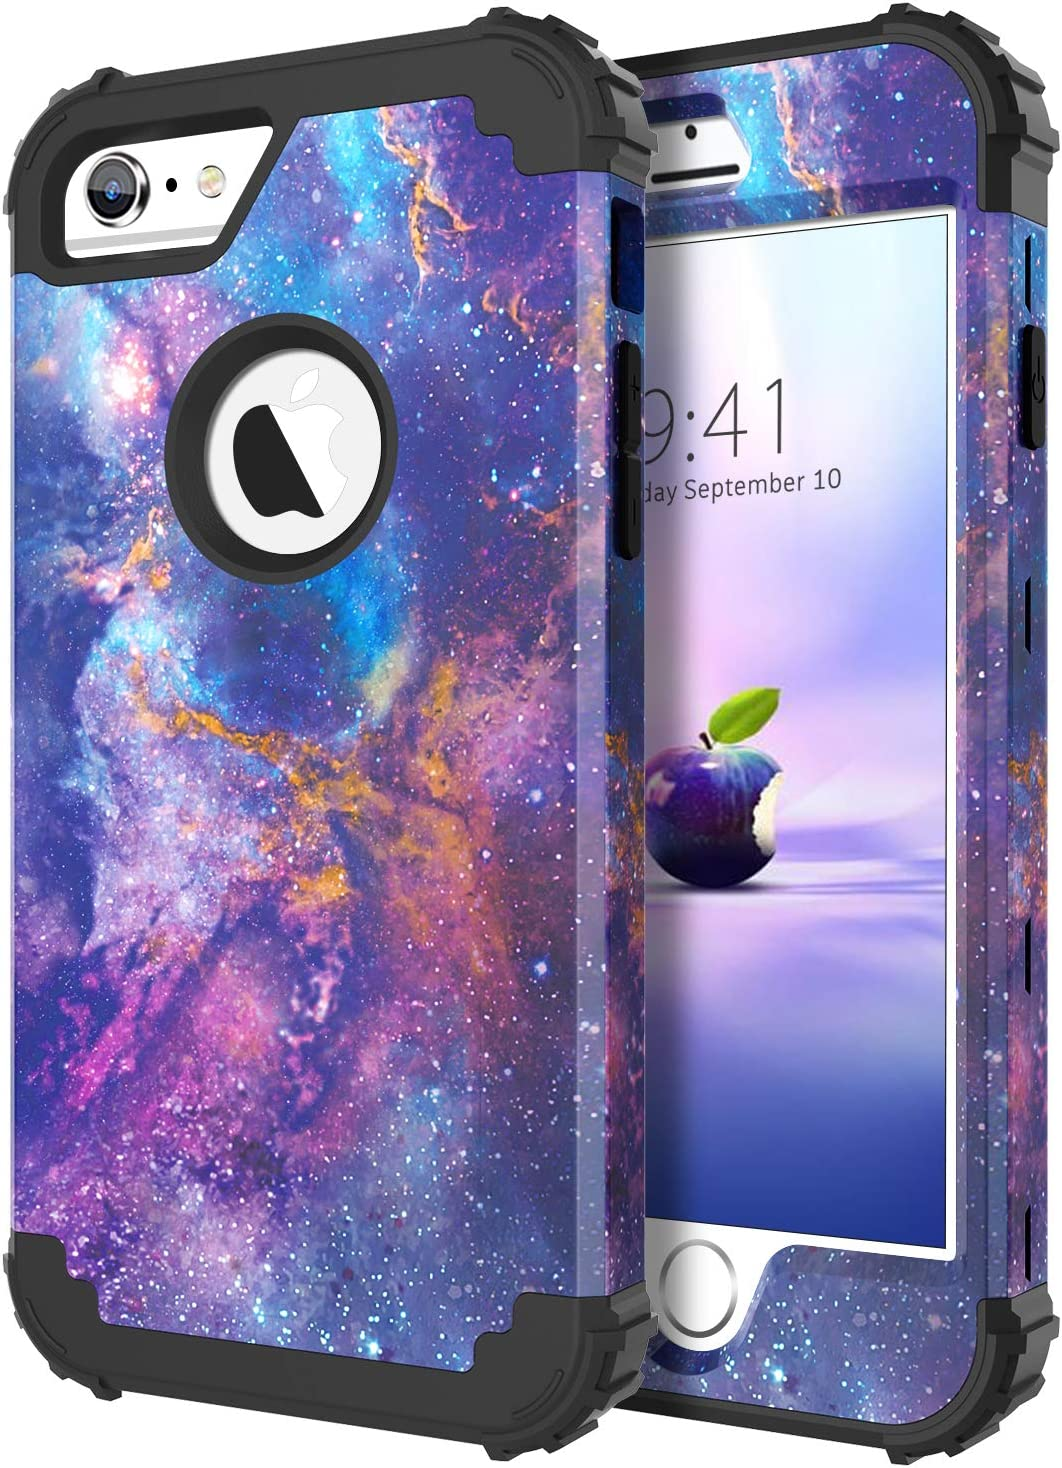 DUEDUE iPhone 6S Case,iPhone 6 Case,Nebula Stars Galaxy Design,Heavy Duty Rugged Shockproof Drop Protection 3 in 1 Hybrid Hard PC Cover Silicone Bumper Full Body Protective Case for iPhone 6S/6,Purple